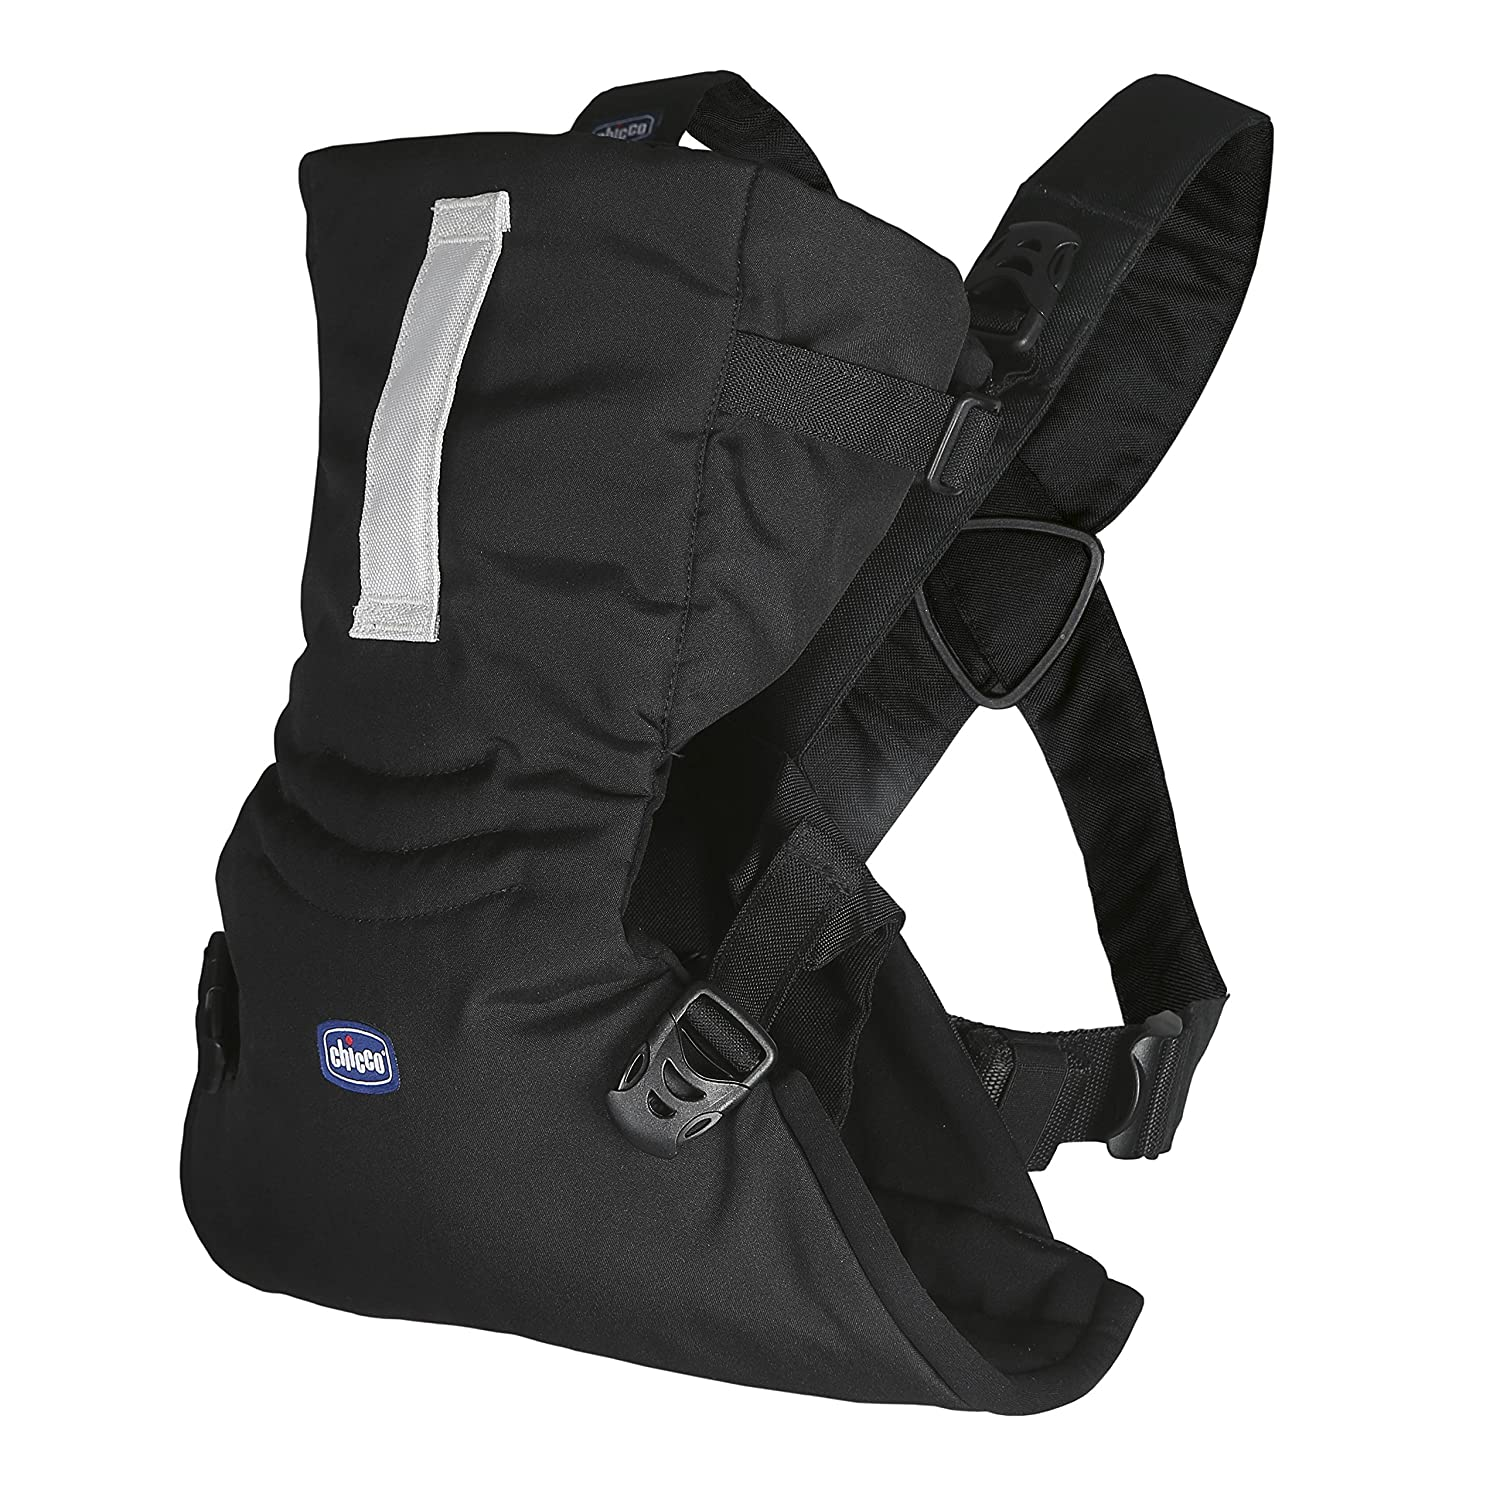 Chicco Baby Carrier Easy Fit Black Night